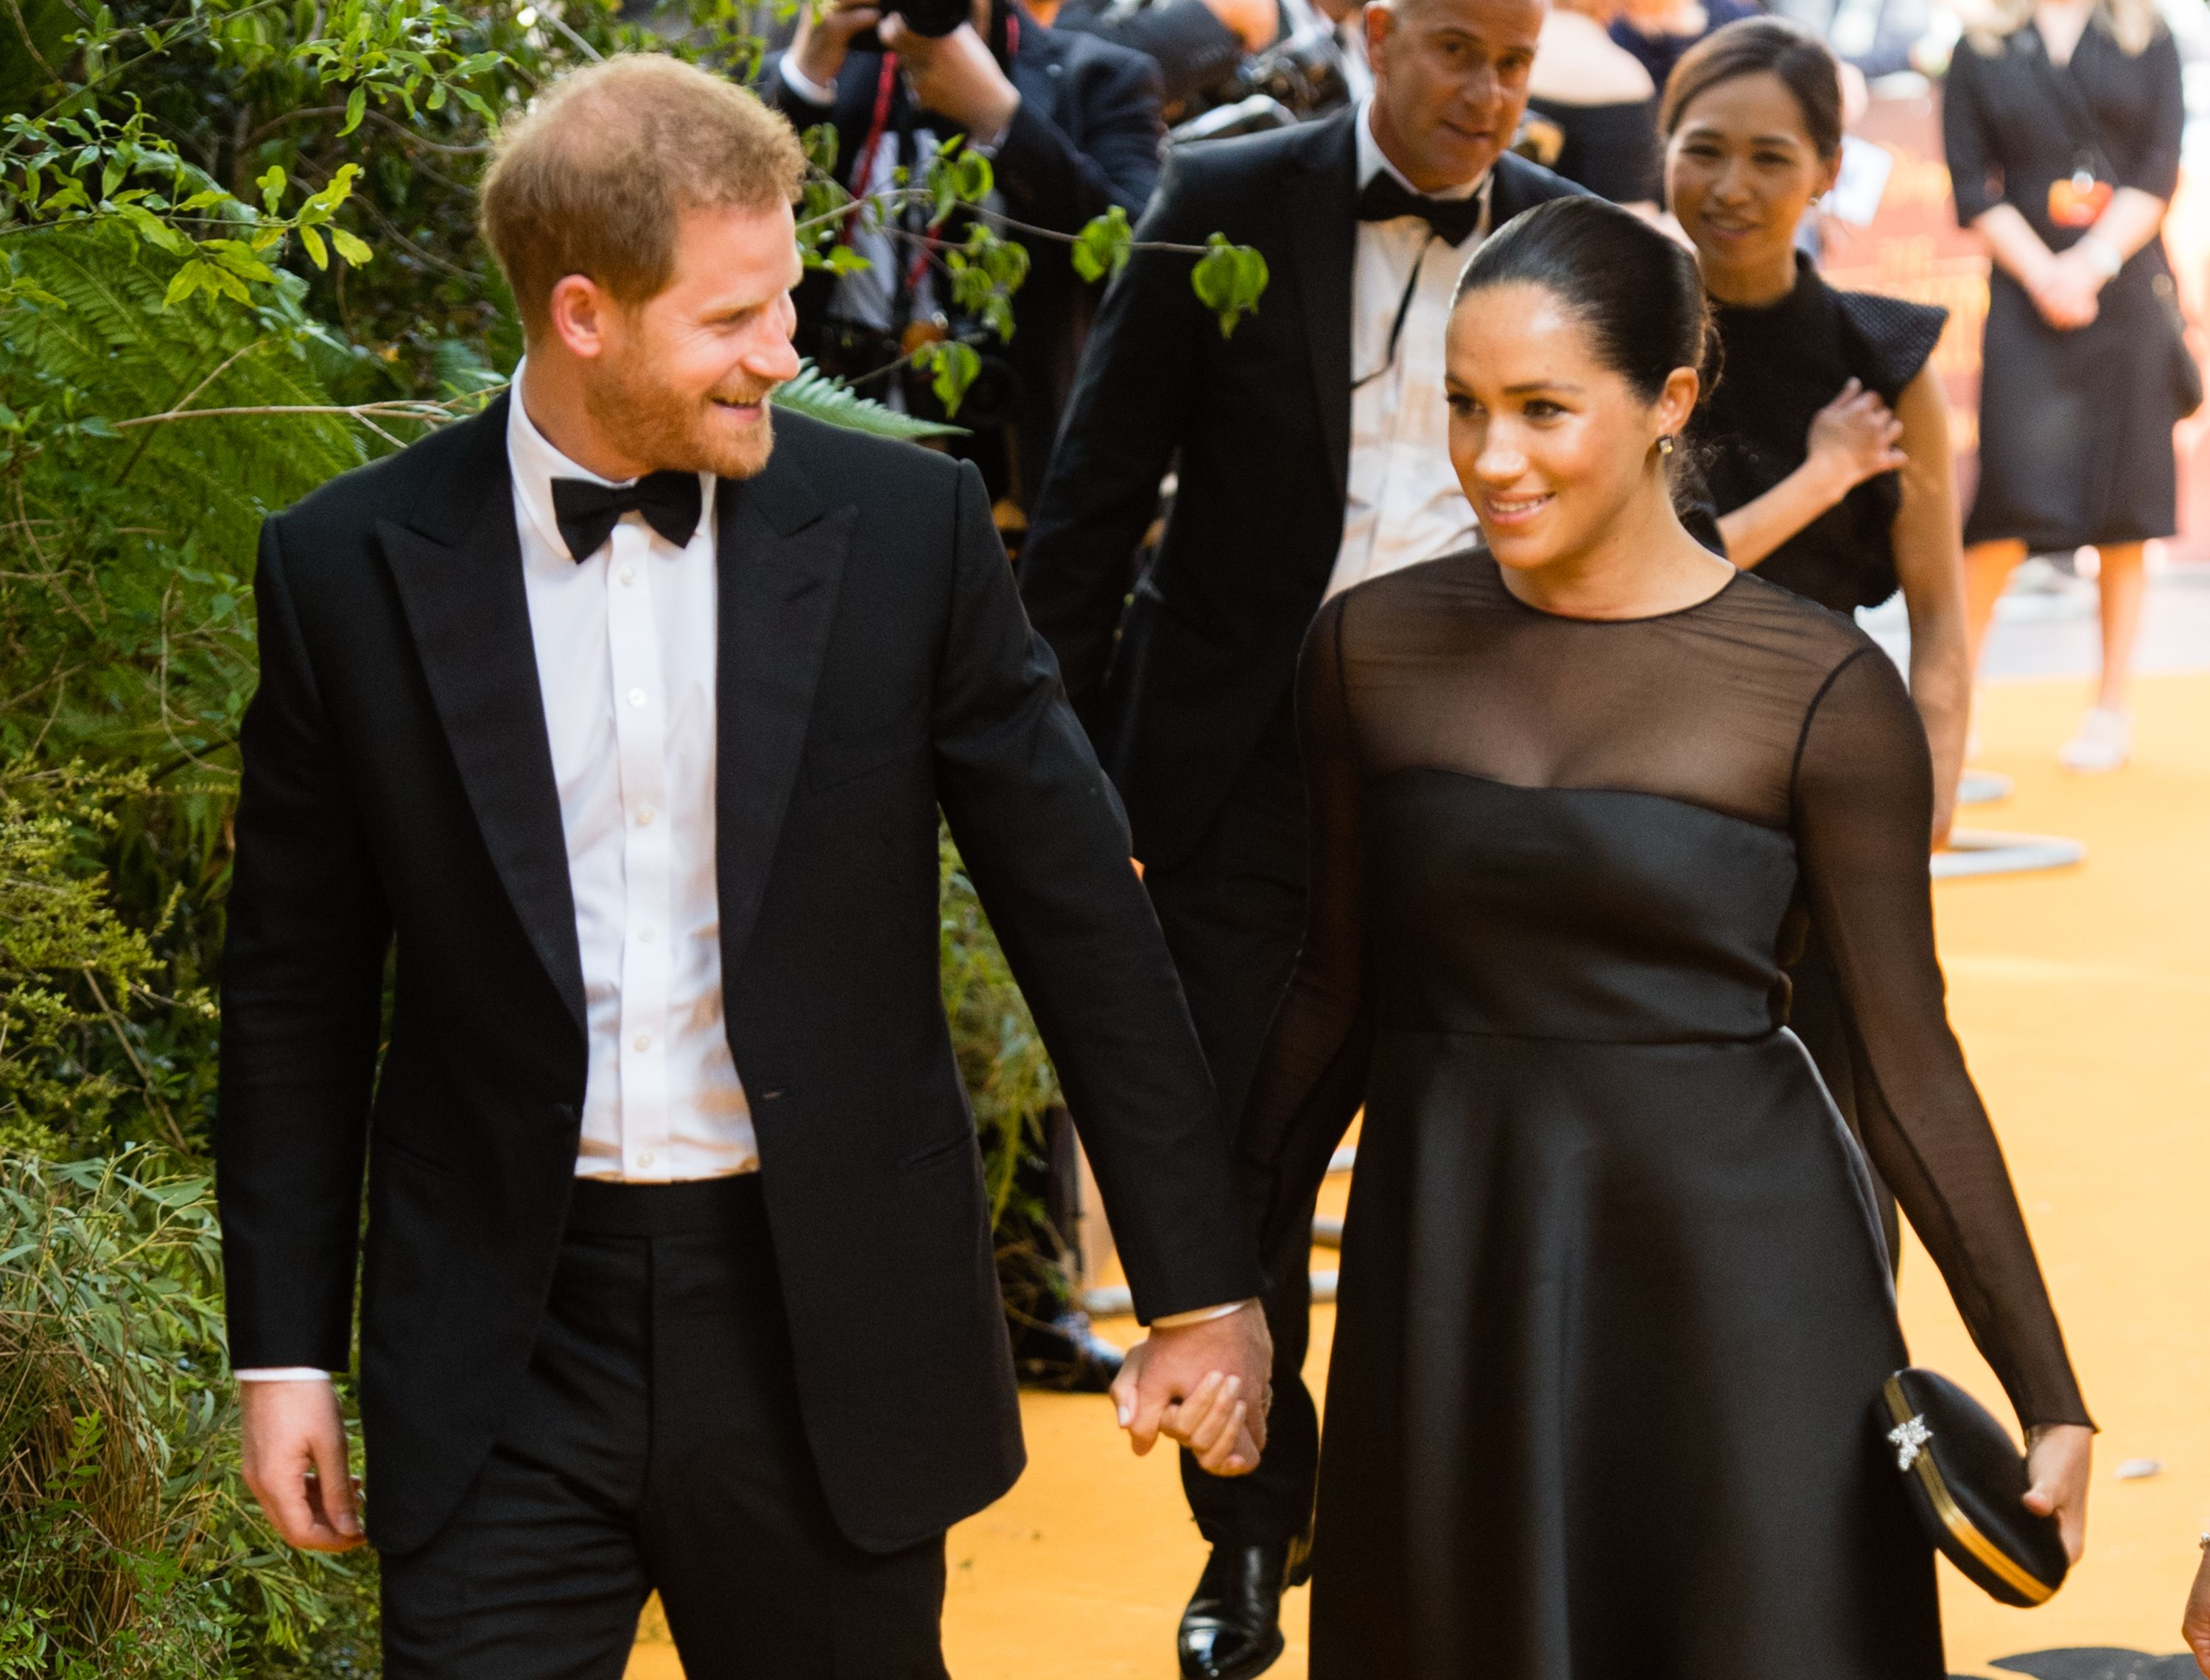 Meghan Markle Seemingly Commented on the Hate She Gets at 'The Lion King' Premiere